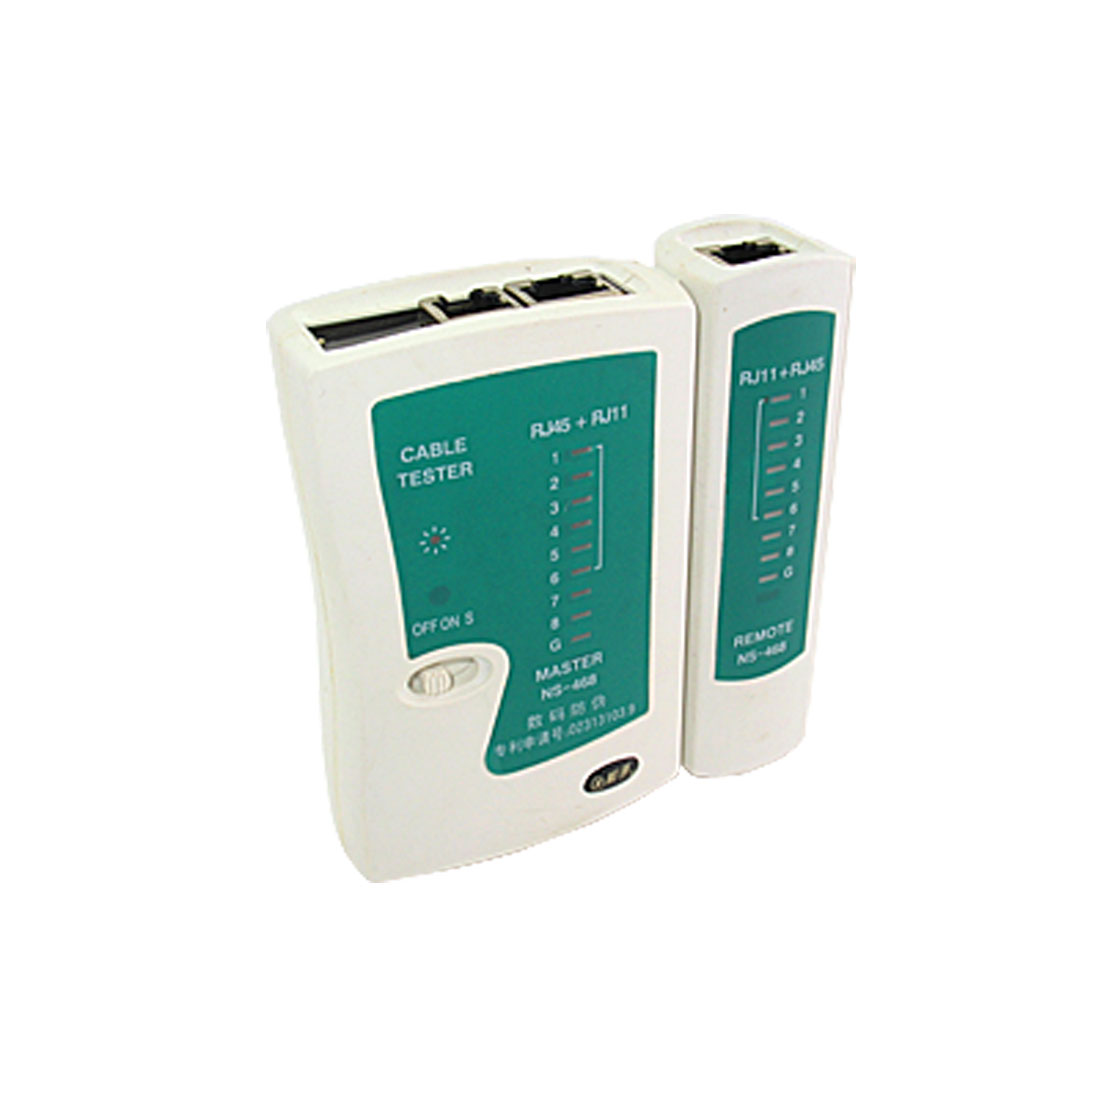 Cable Tester Cat5 Network RJ45 RJ11